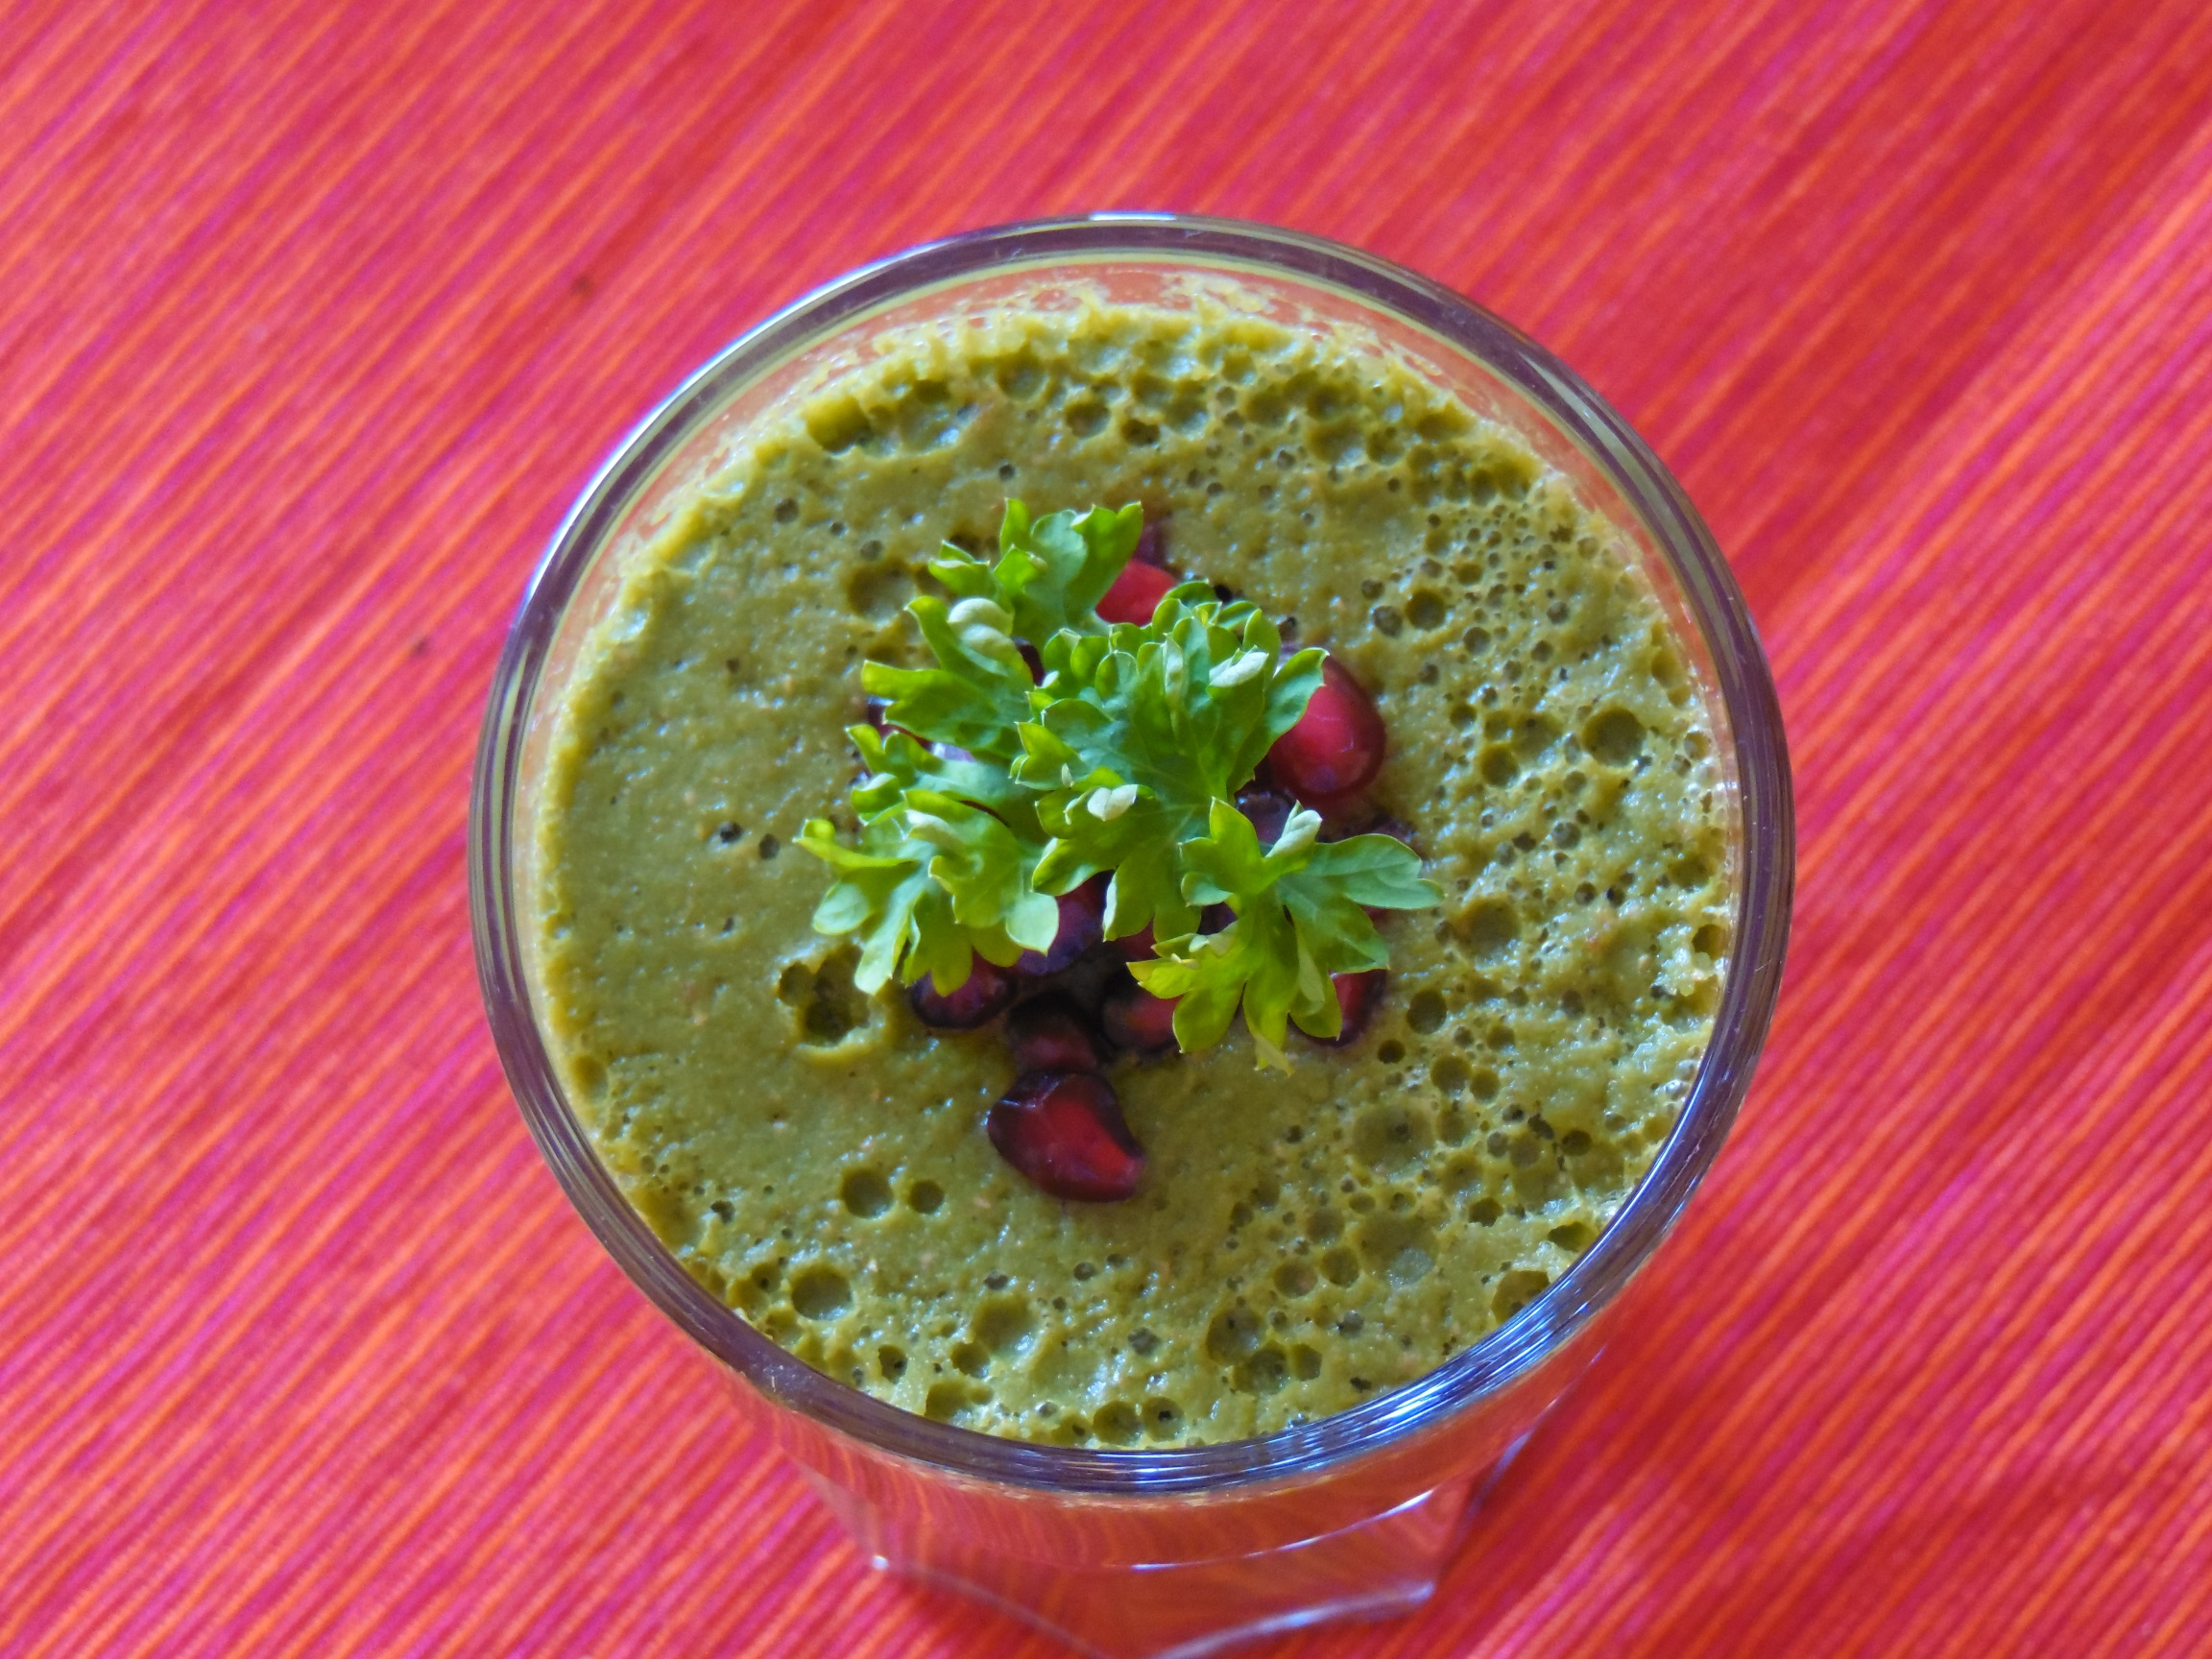 Feuriger Paprika-Smoothie